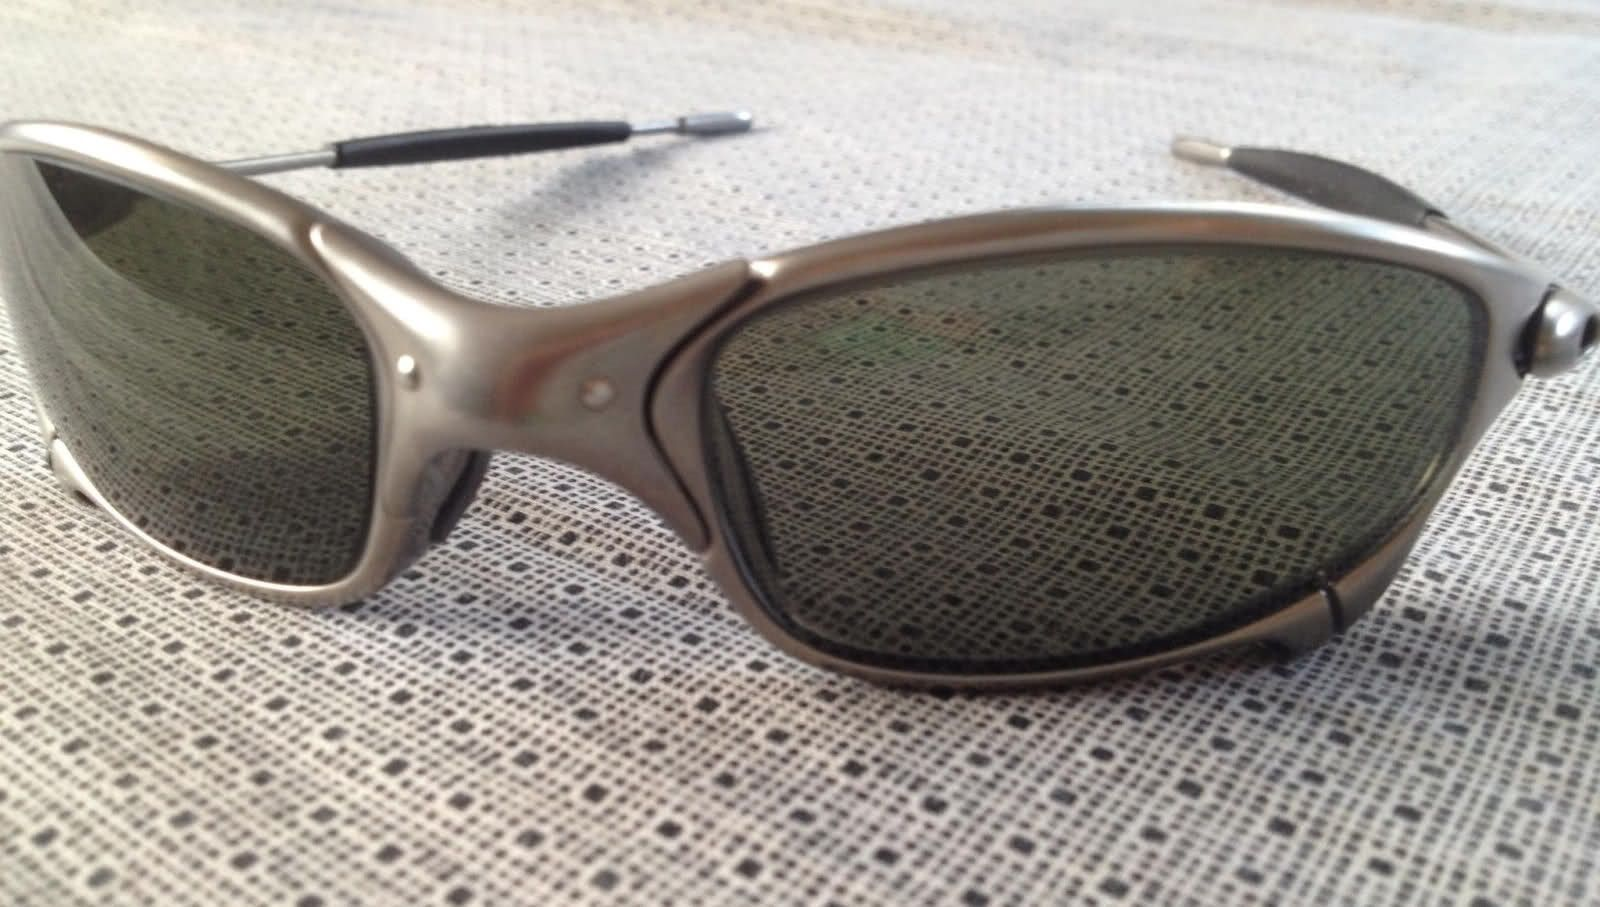 Difference Bet. Plasma & Xmetal Frames - 312u0i1.jpg